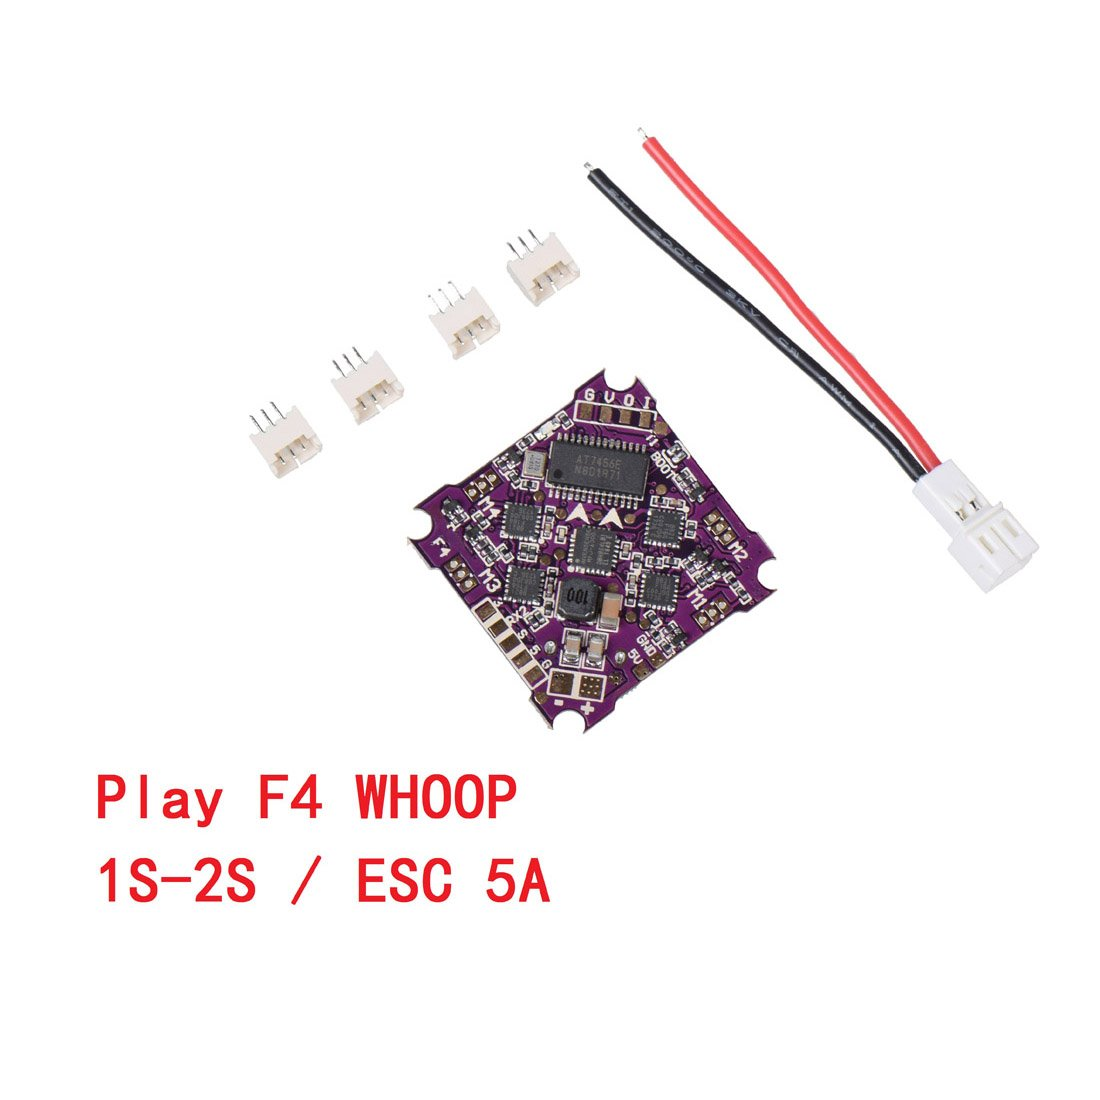 QwinOut Play F4 Whoop Flight Controller AIO OSD BEC & Built-in 5A BL_S 1-2S 4in1 ESC for RC Drone FPV Racing Quadcopter